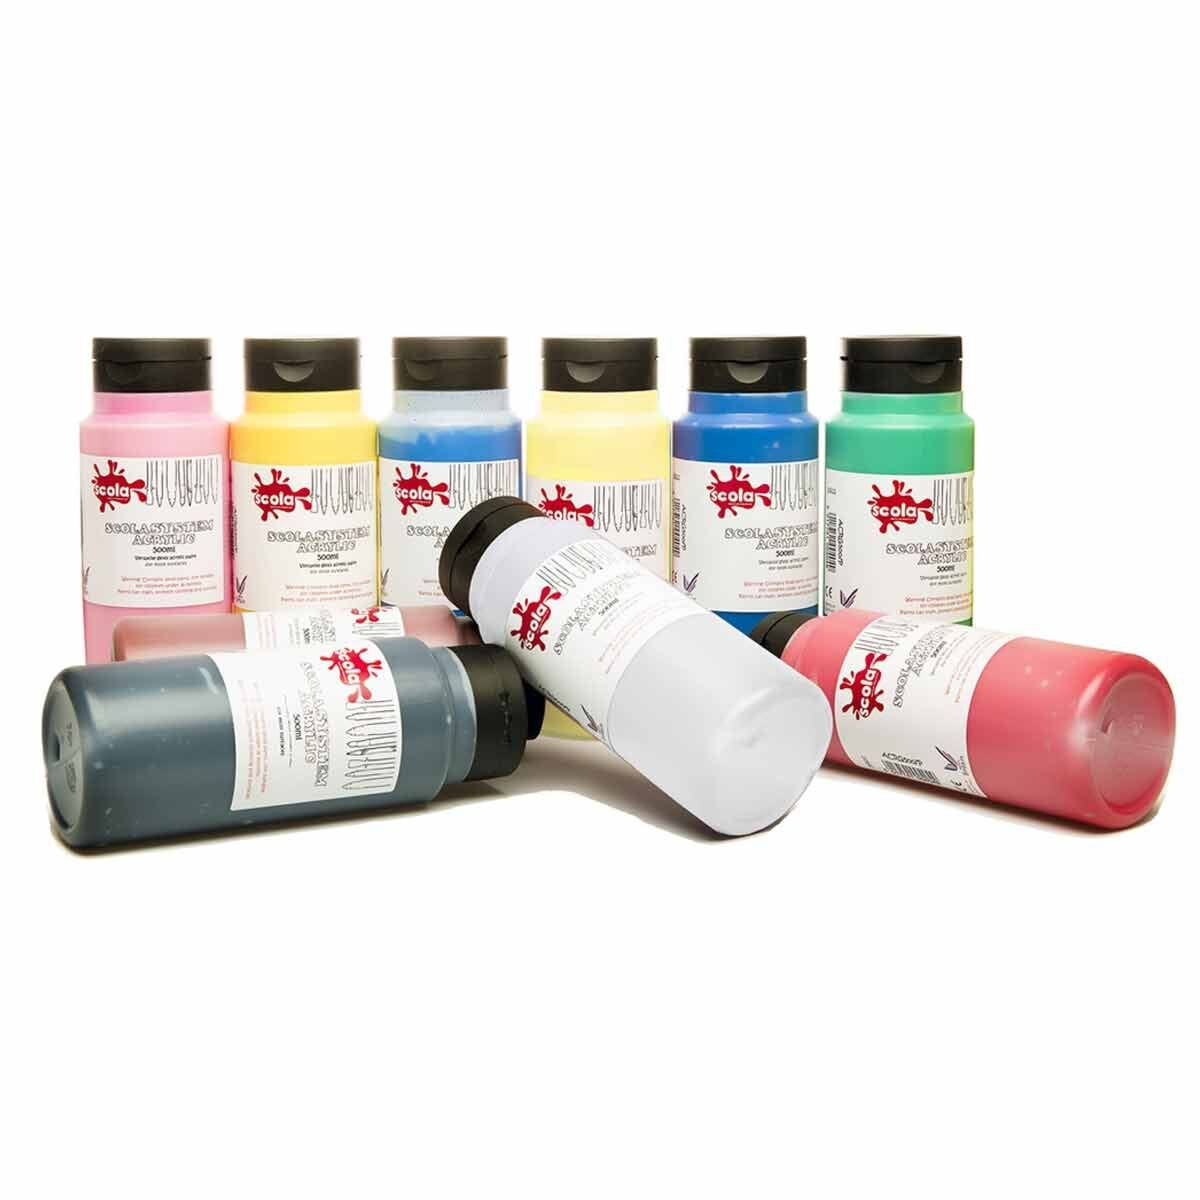 Scolaquip Acrylic Paint 500ml Pack of 10 Assorted